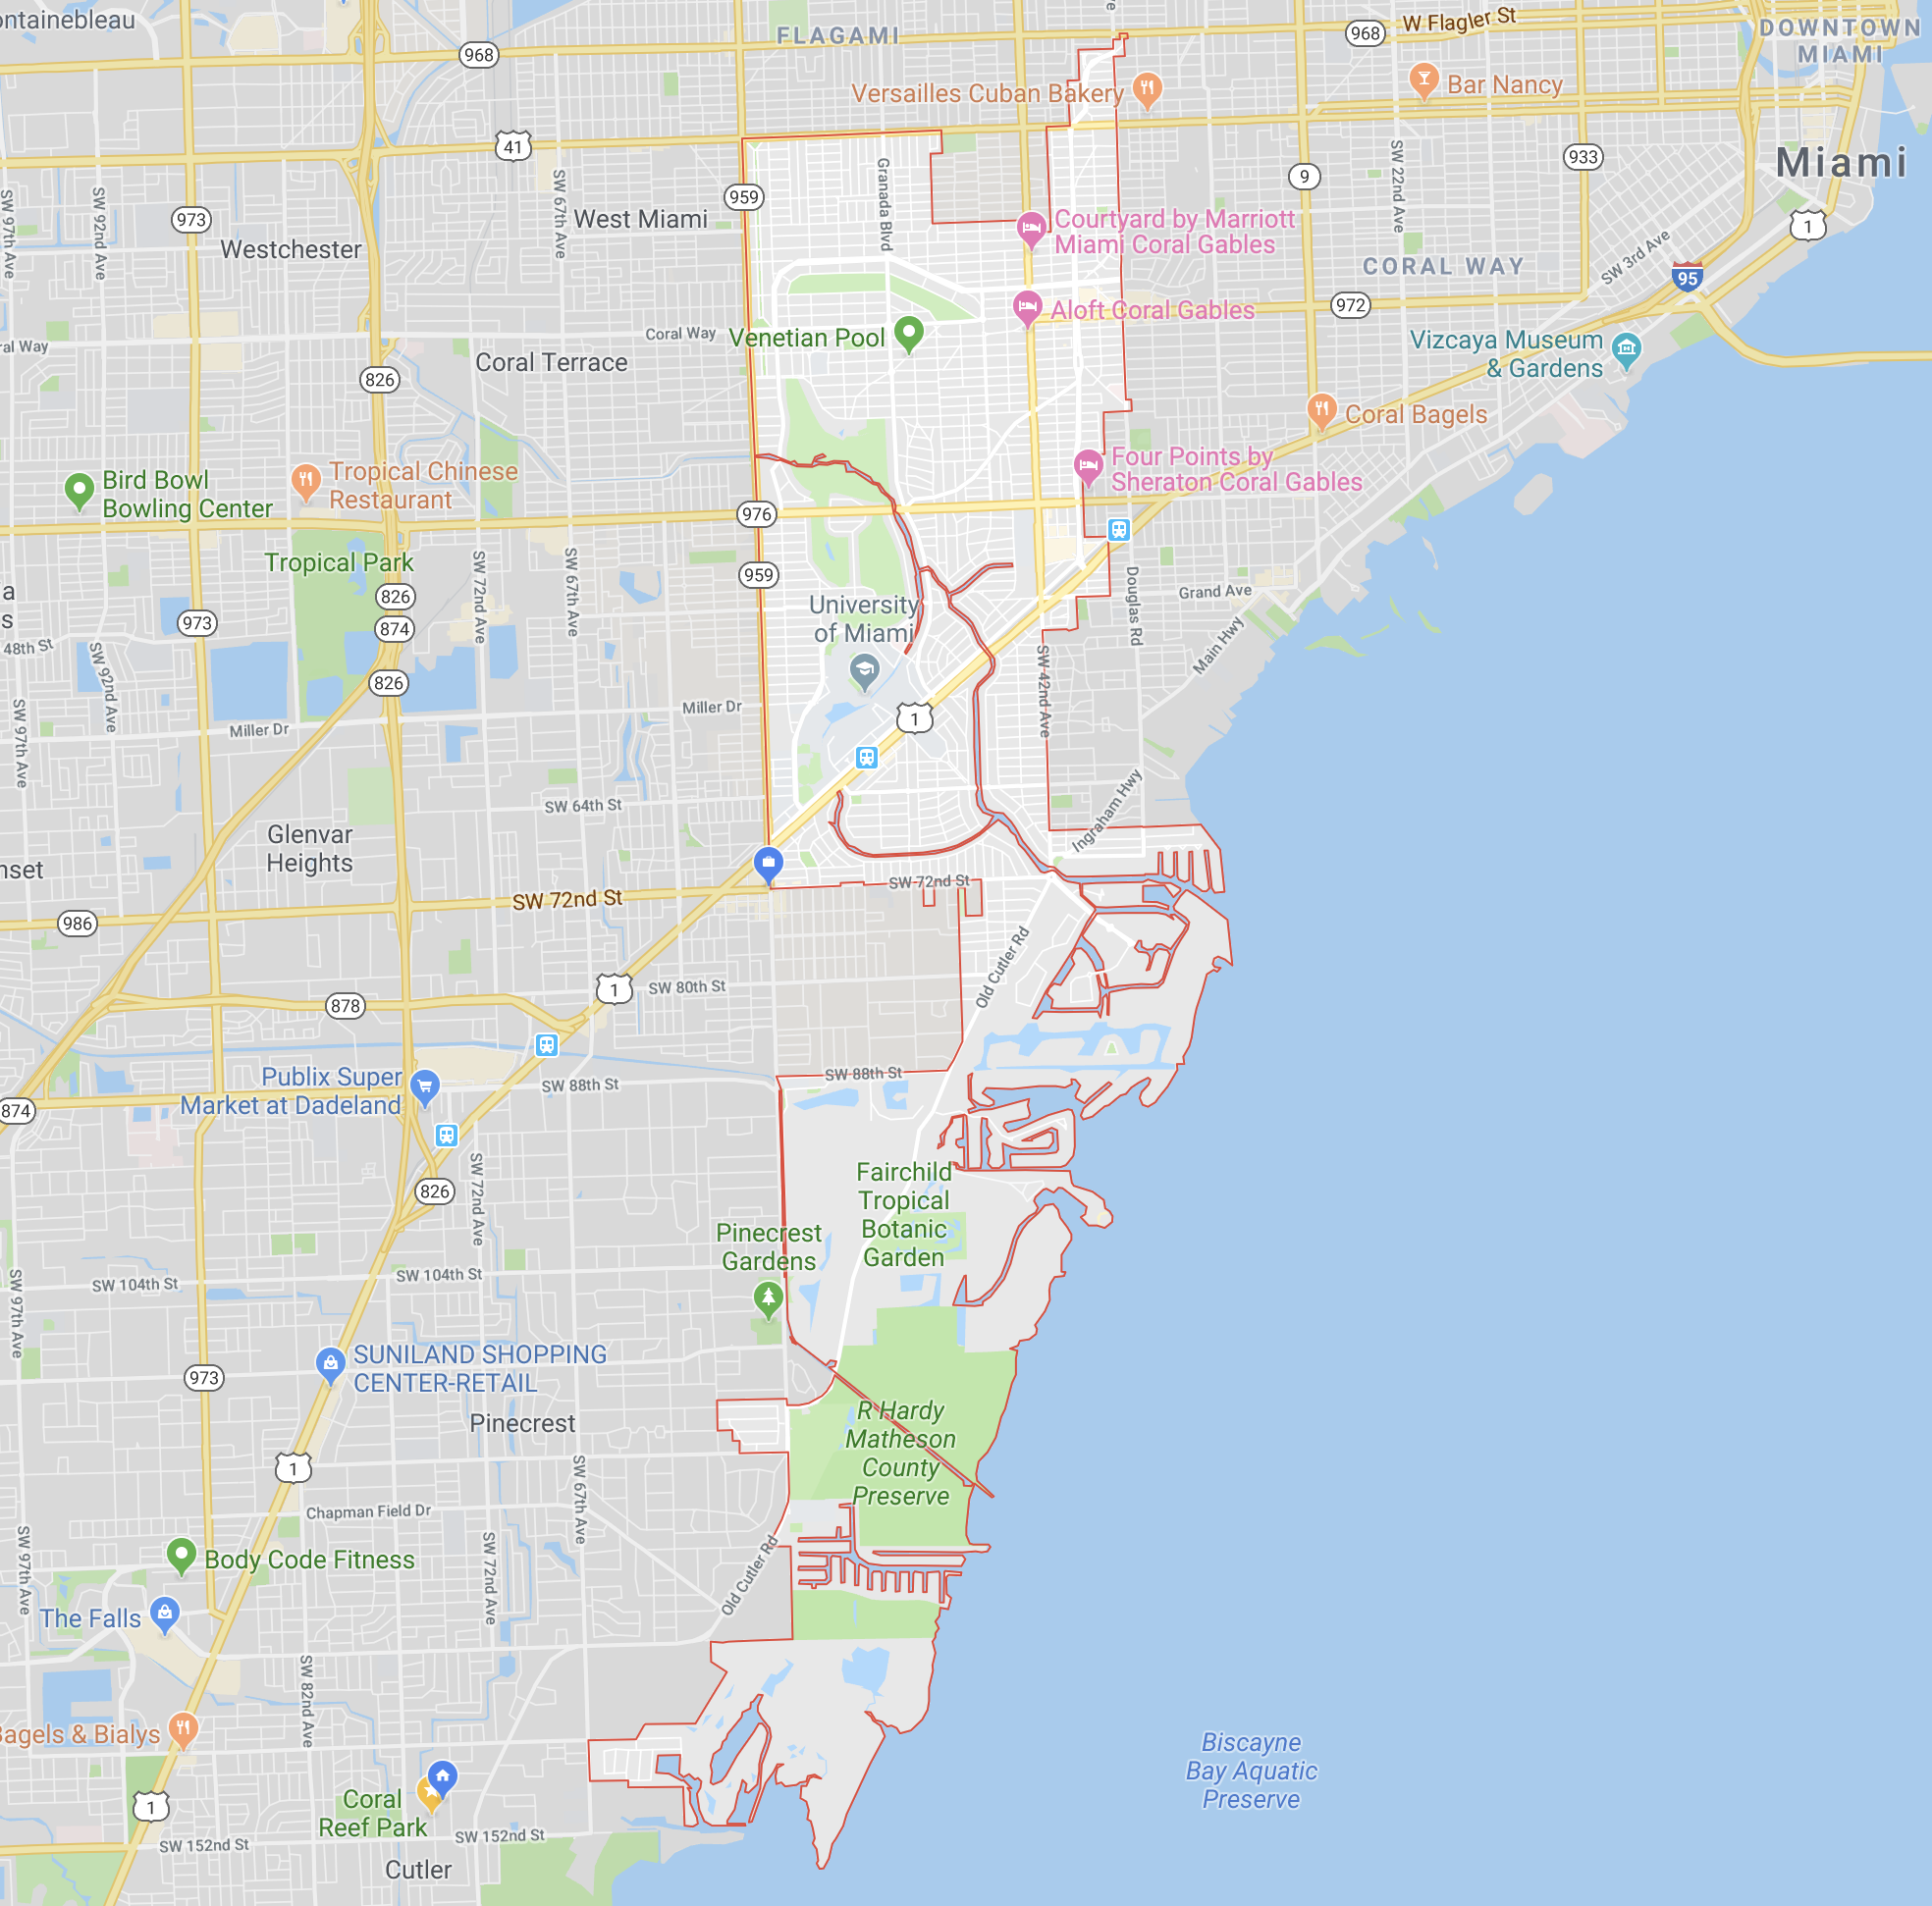 Coral Gables has an odd shape, but is essentially the area East of 57th Avenue, West of 37th Avenue, South of SW 8th Street and North of SW 152nd Street